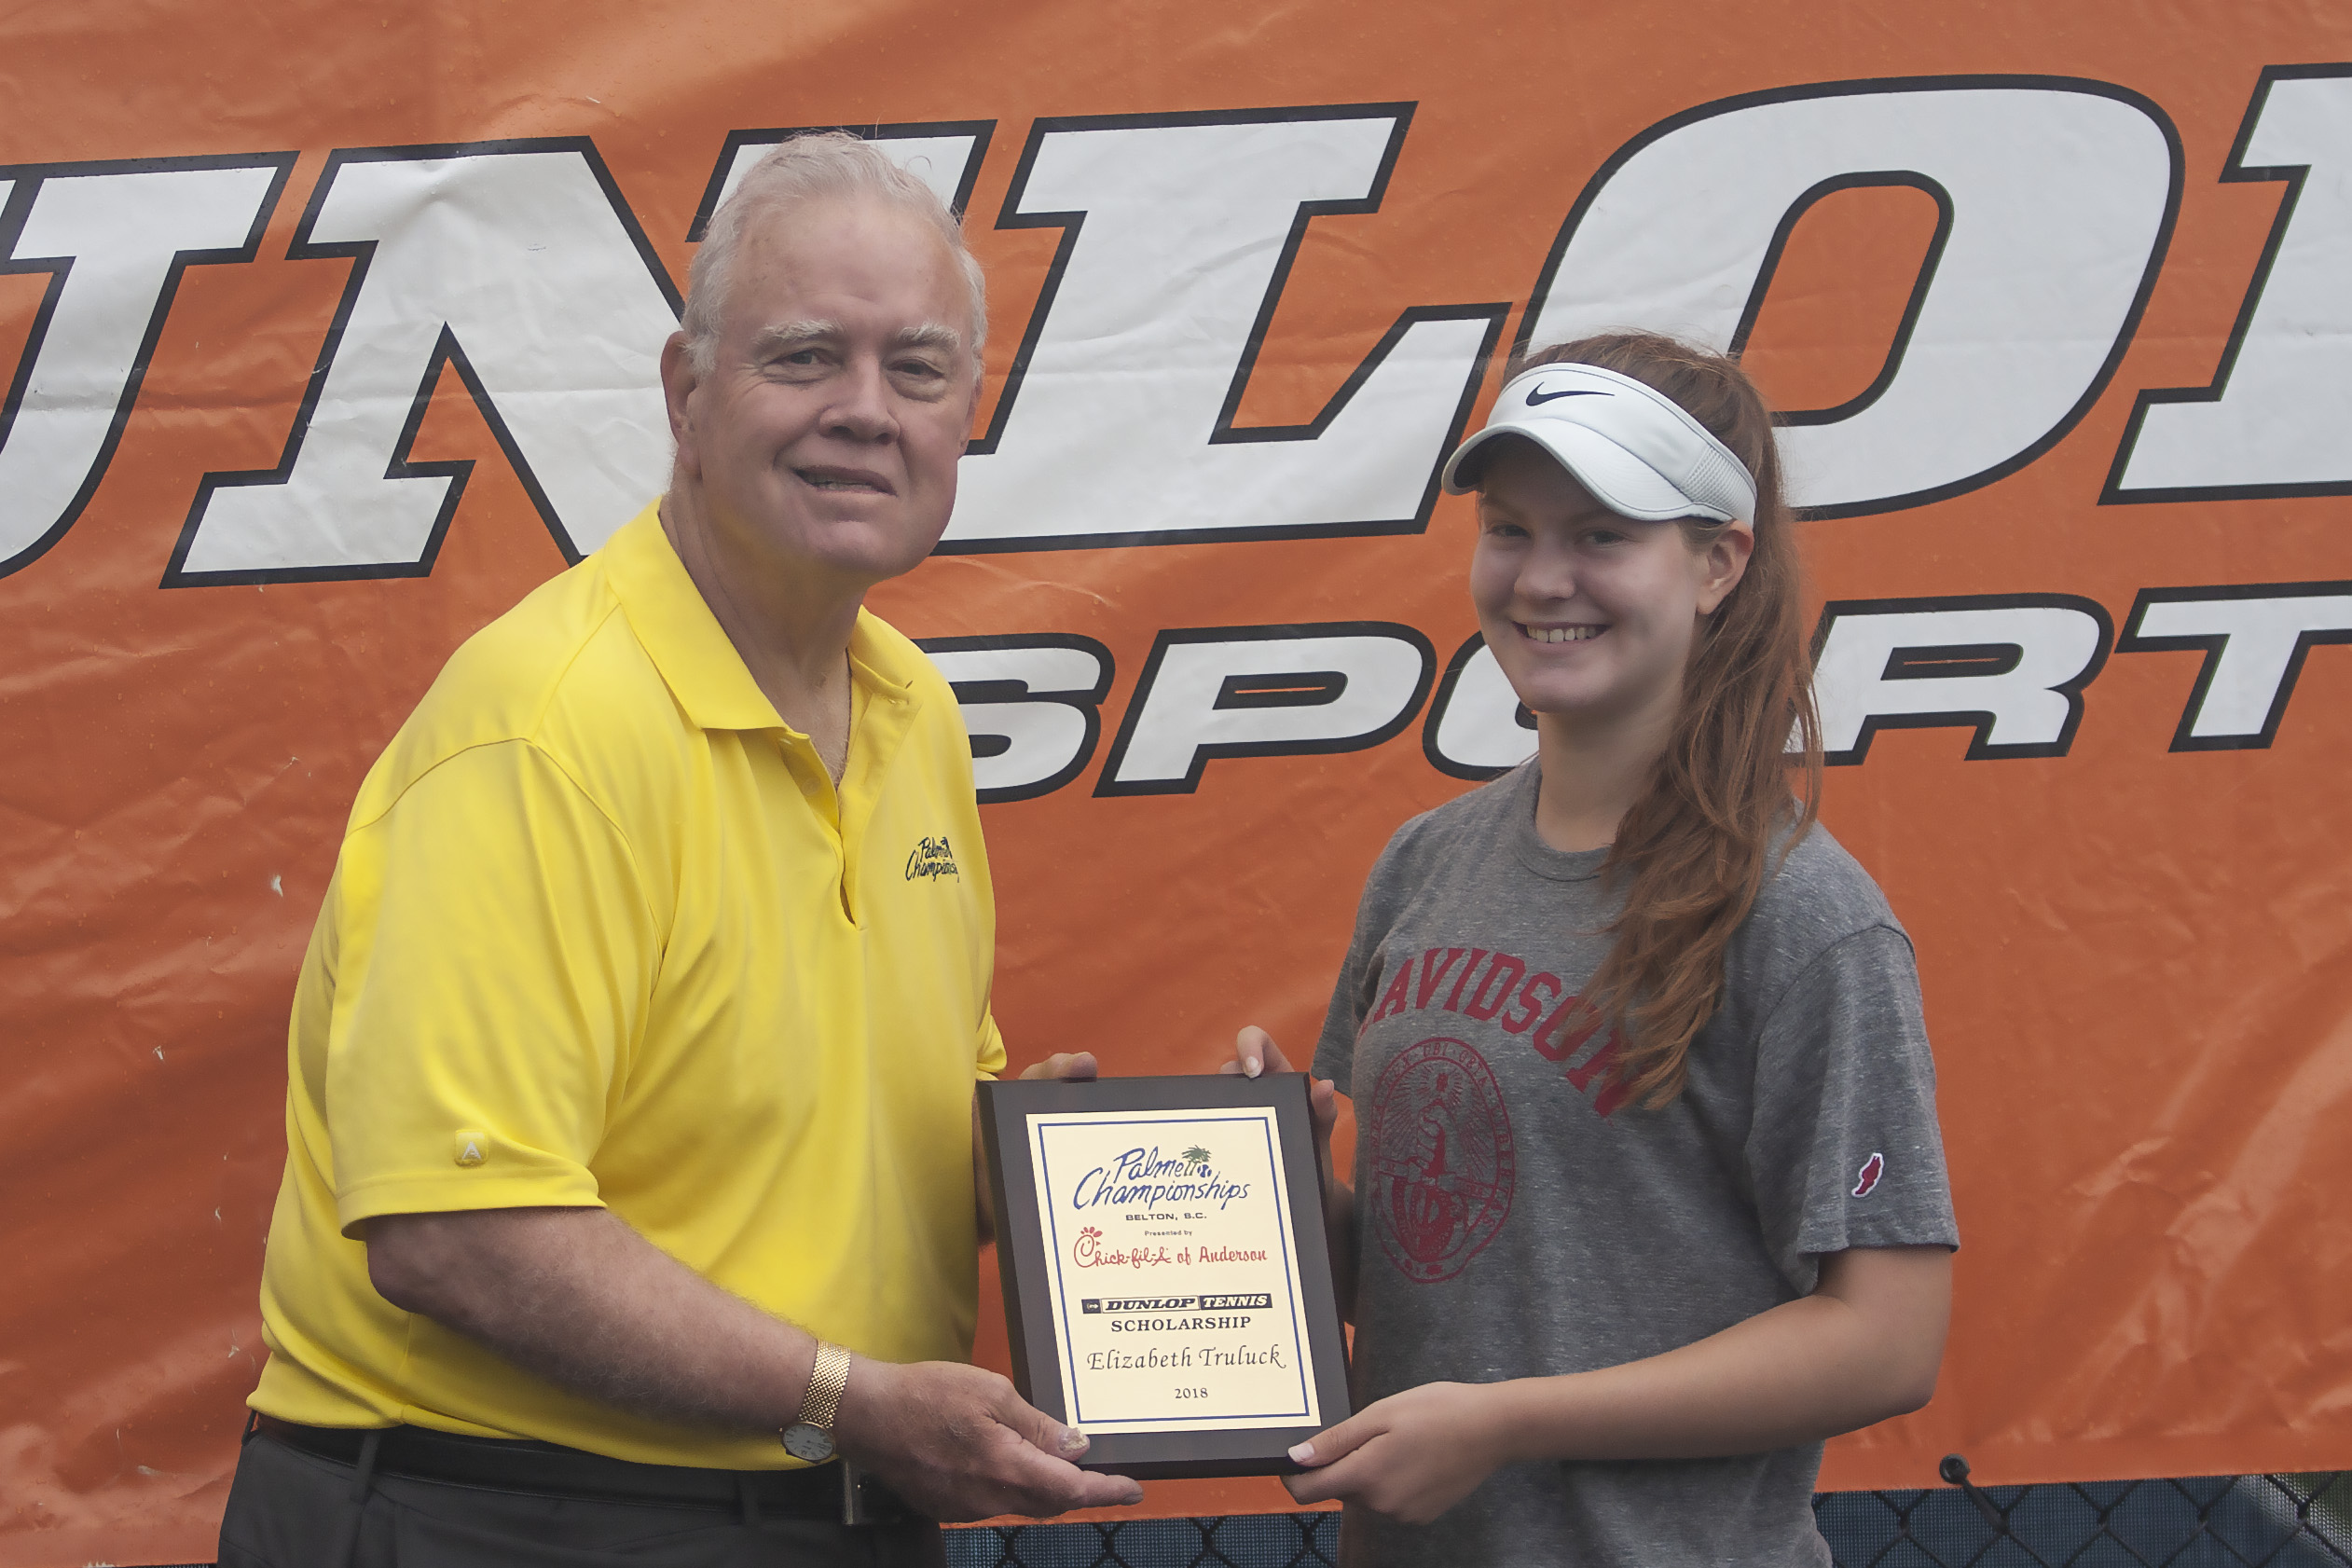 Elizabeth Truluck received a Dunlop Tennis Scholarship, presented by Chick-Fil-A of Anderson, at the event.